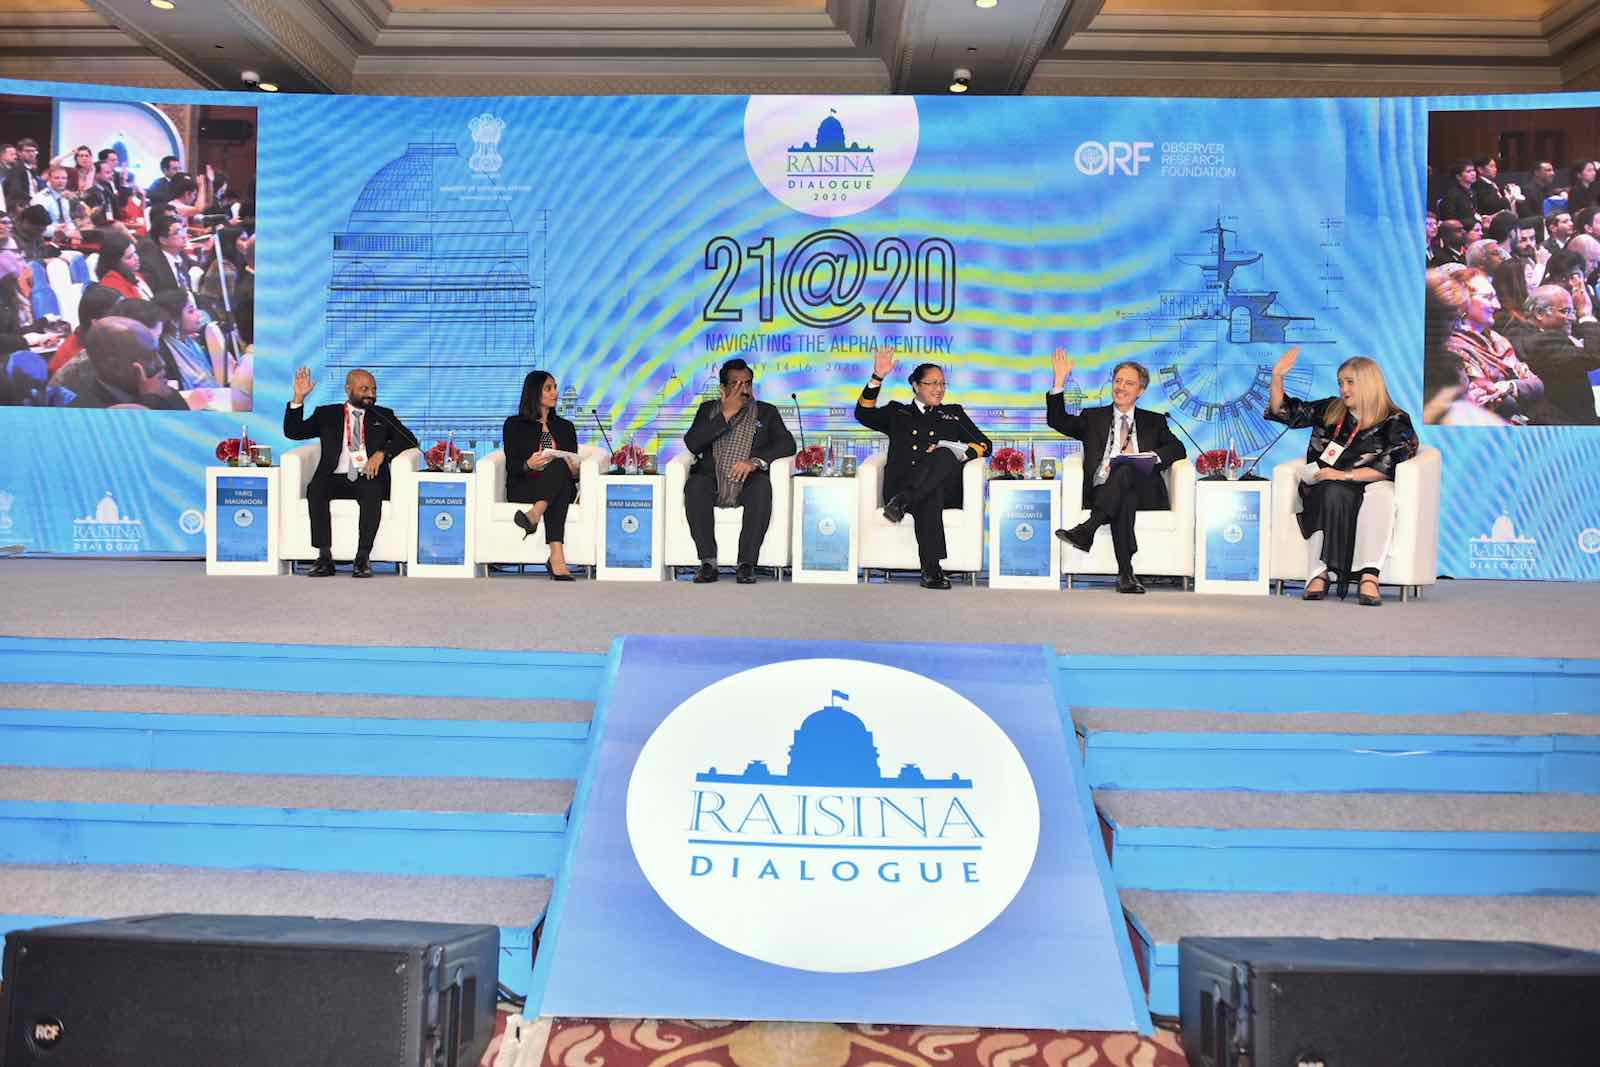 Raising hands Raisina Dialogue 2020 in New Delhi (Photo: MEAphotogallery/Flickr)